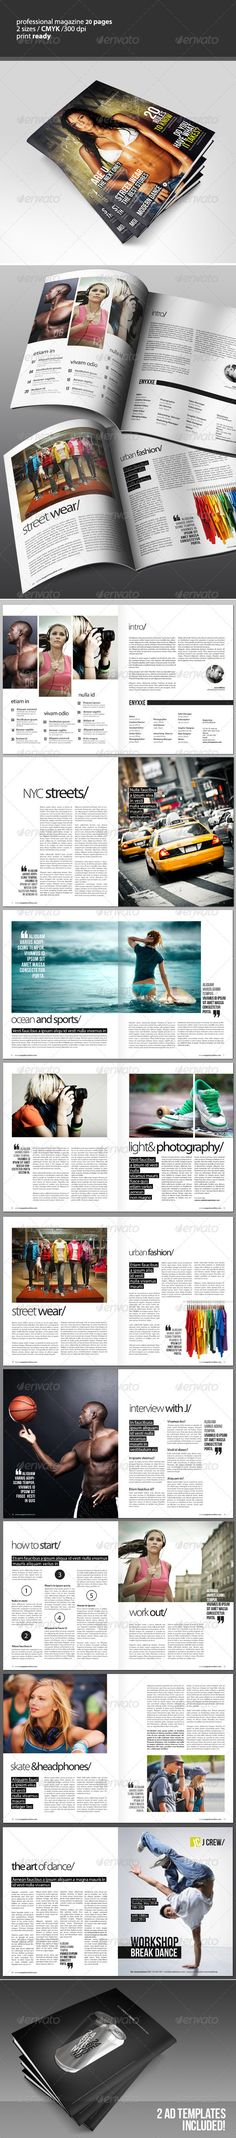 Great looking magazine template on Graphicriver